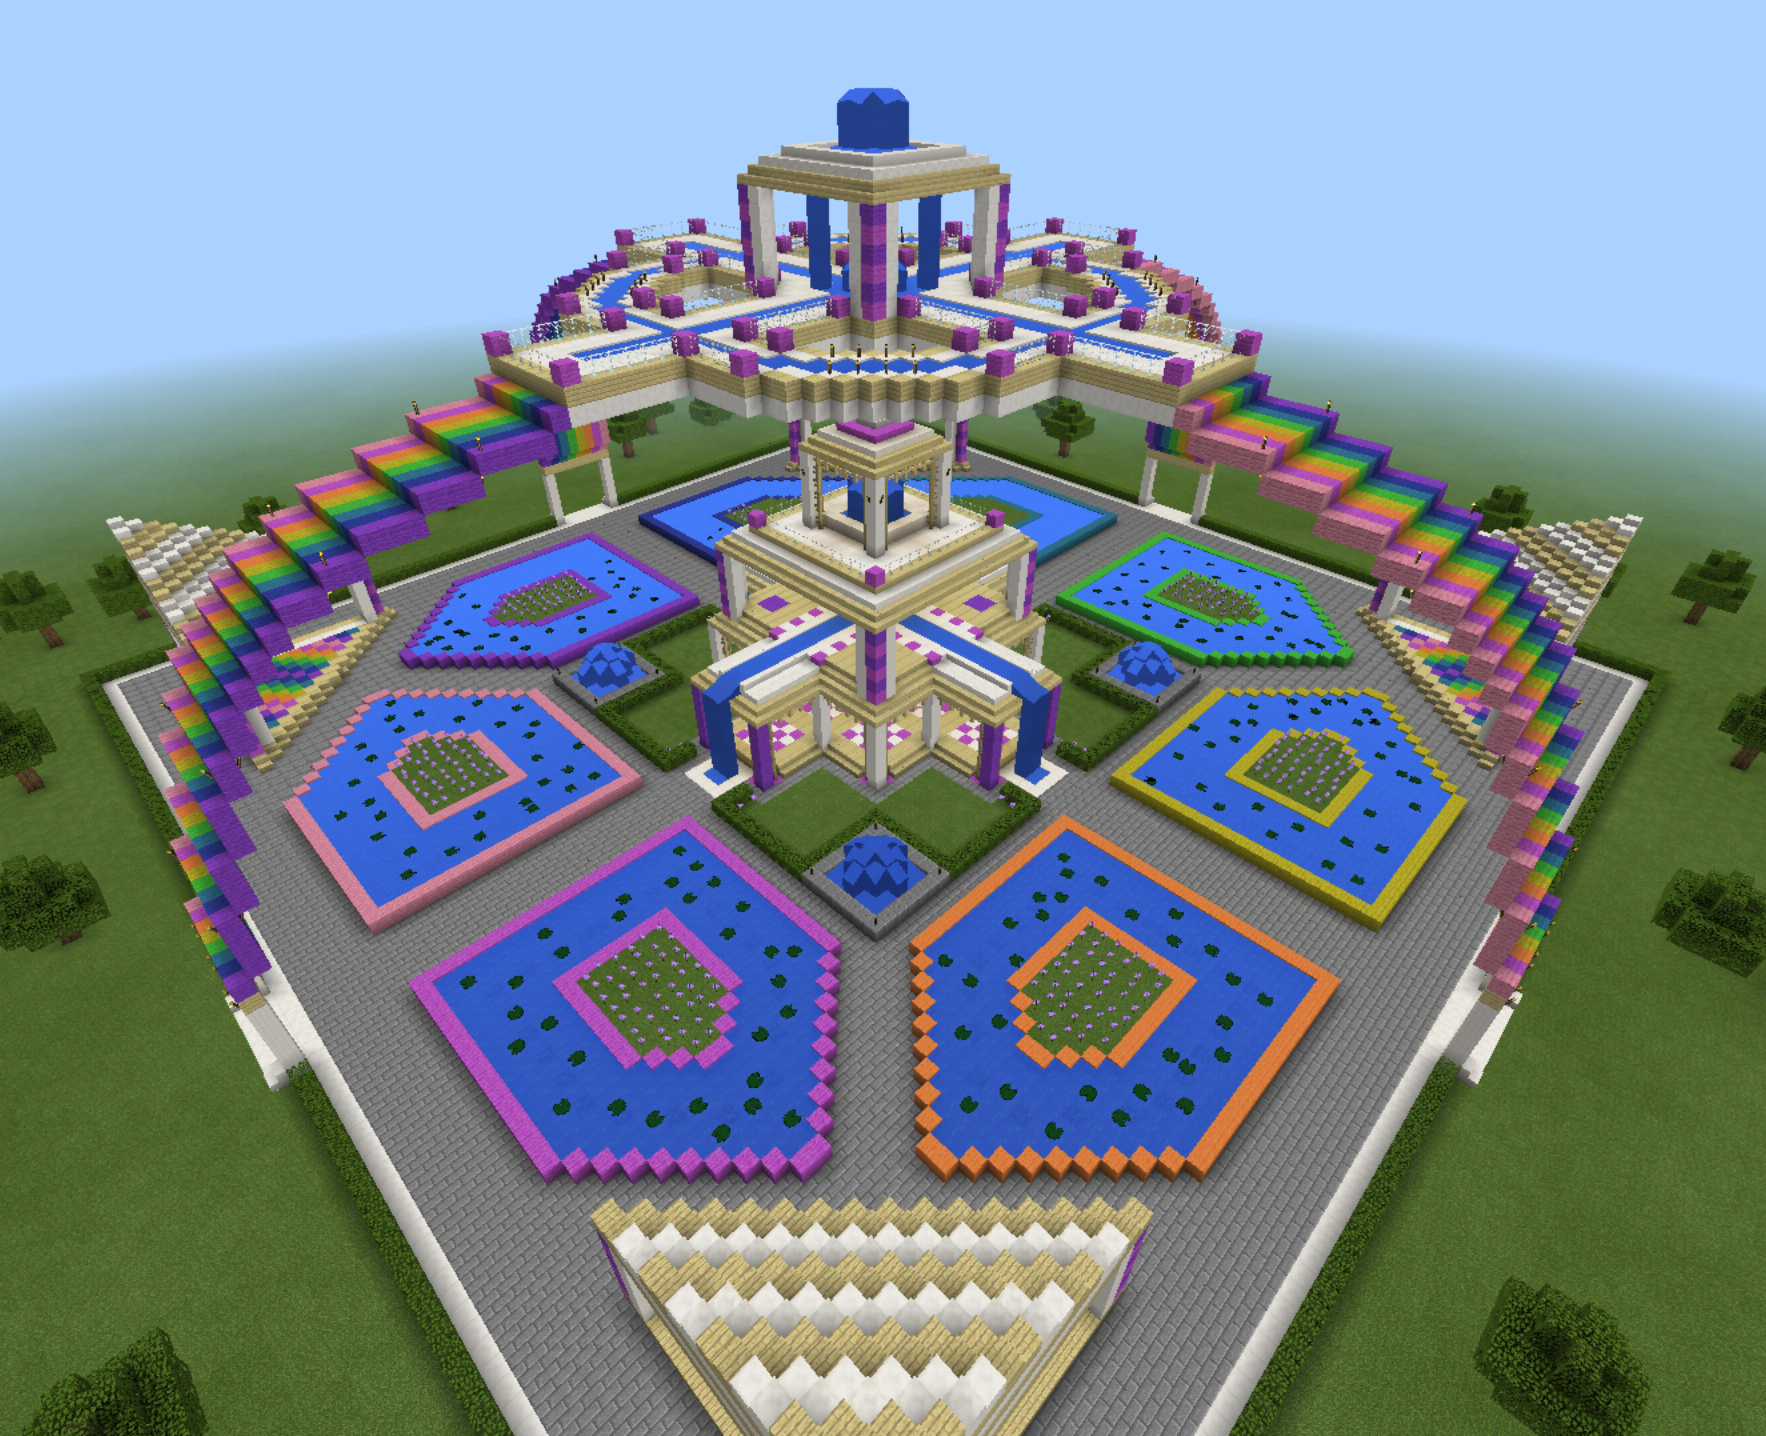 Minecraft Village Garden minecraft sky rainbow waterfall garden fountain temple creation